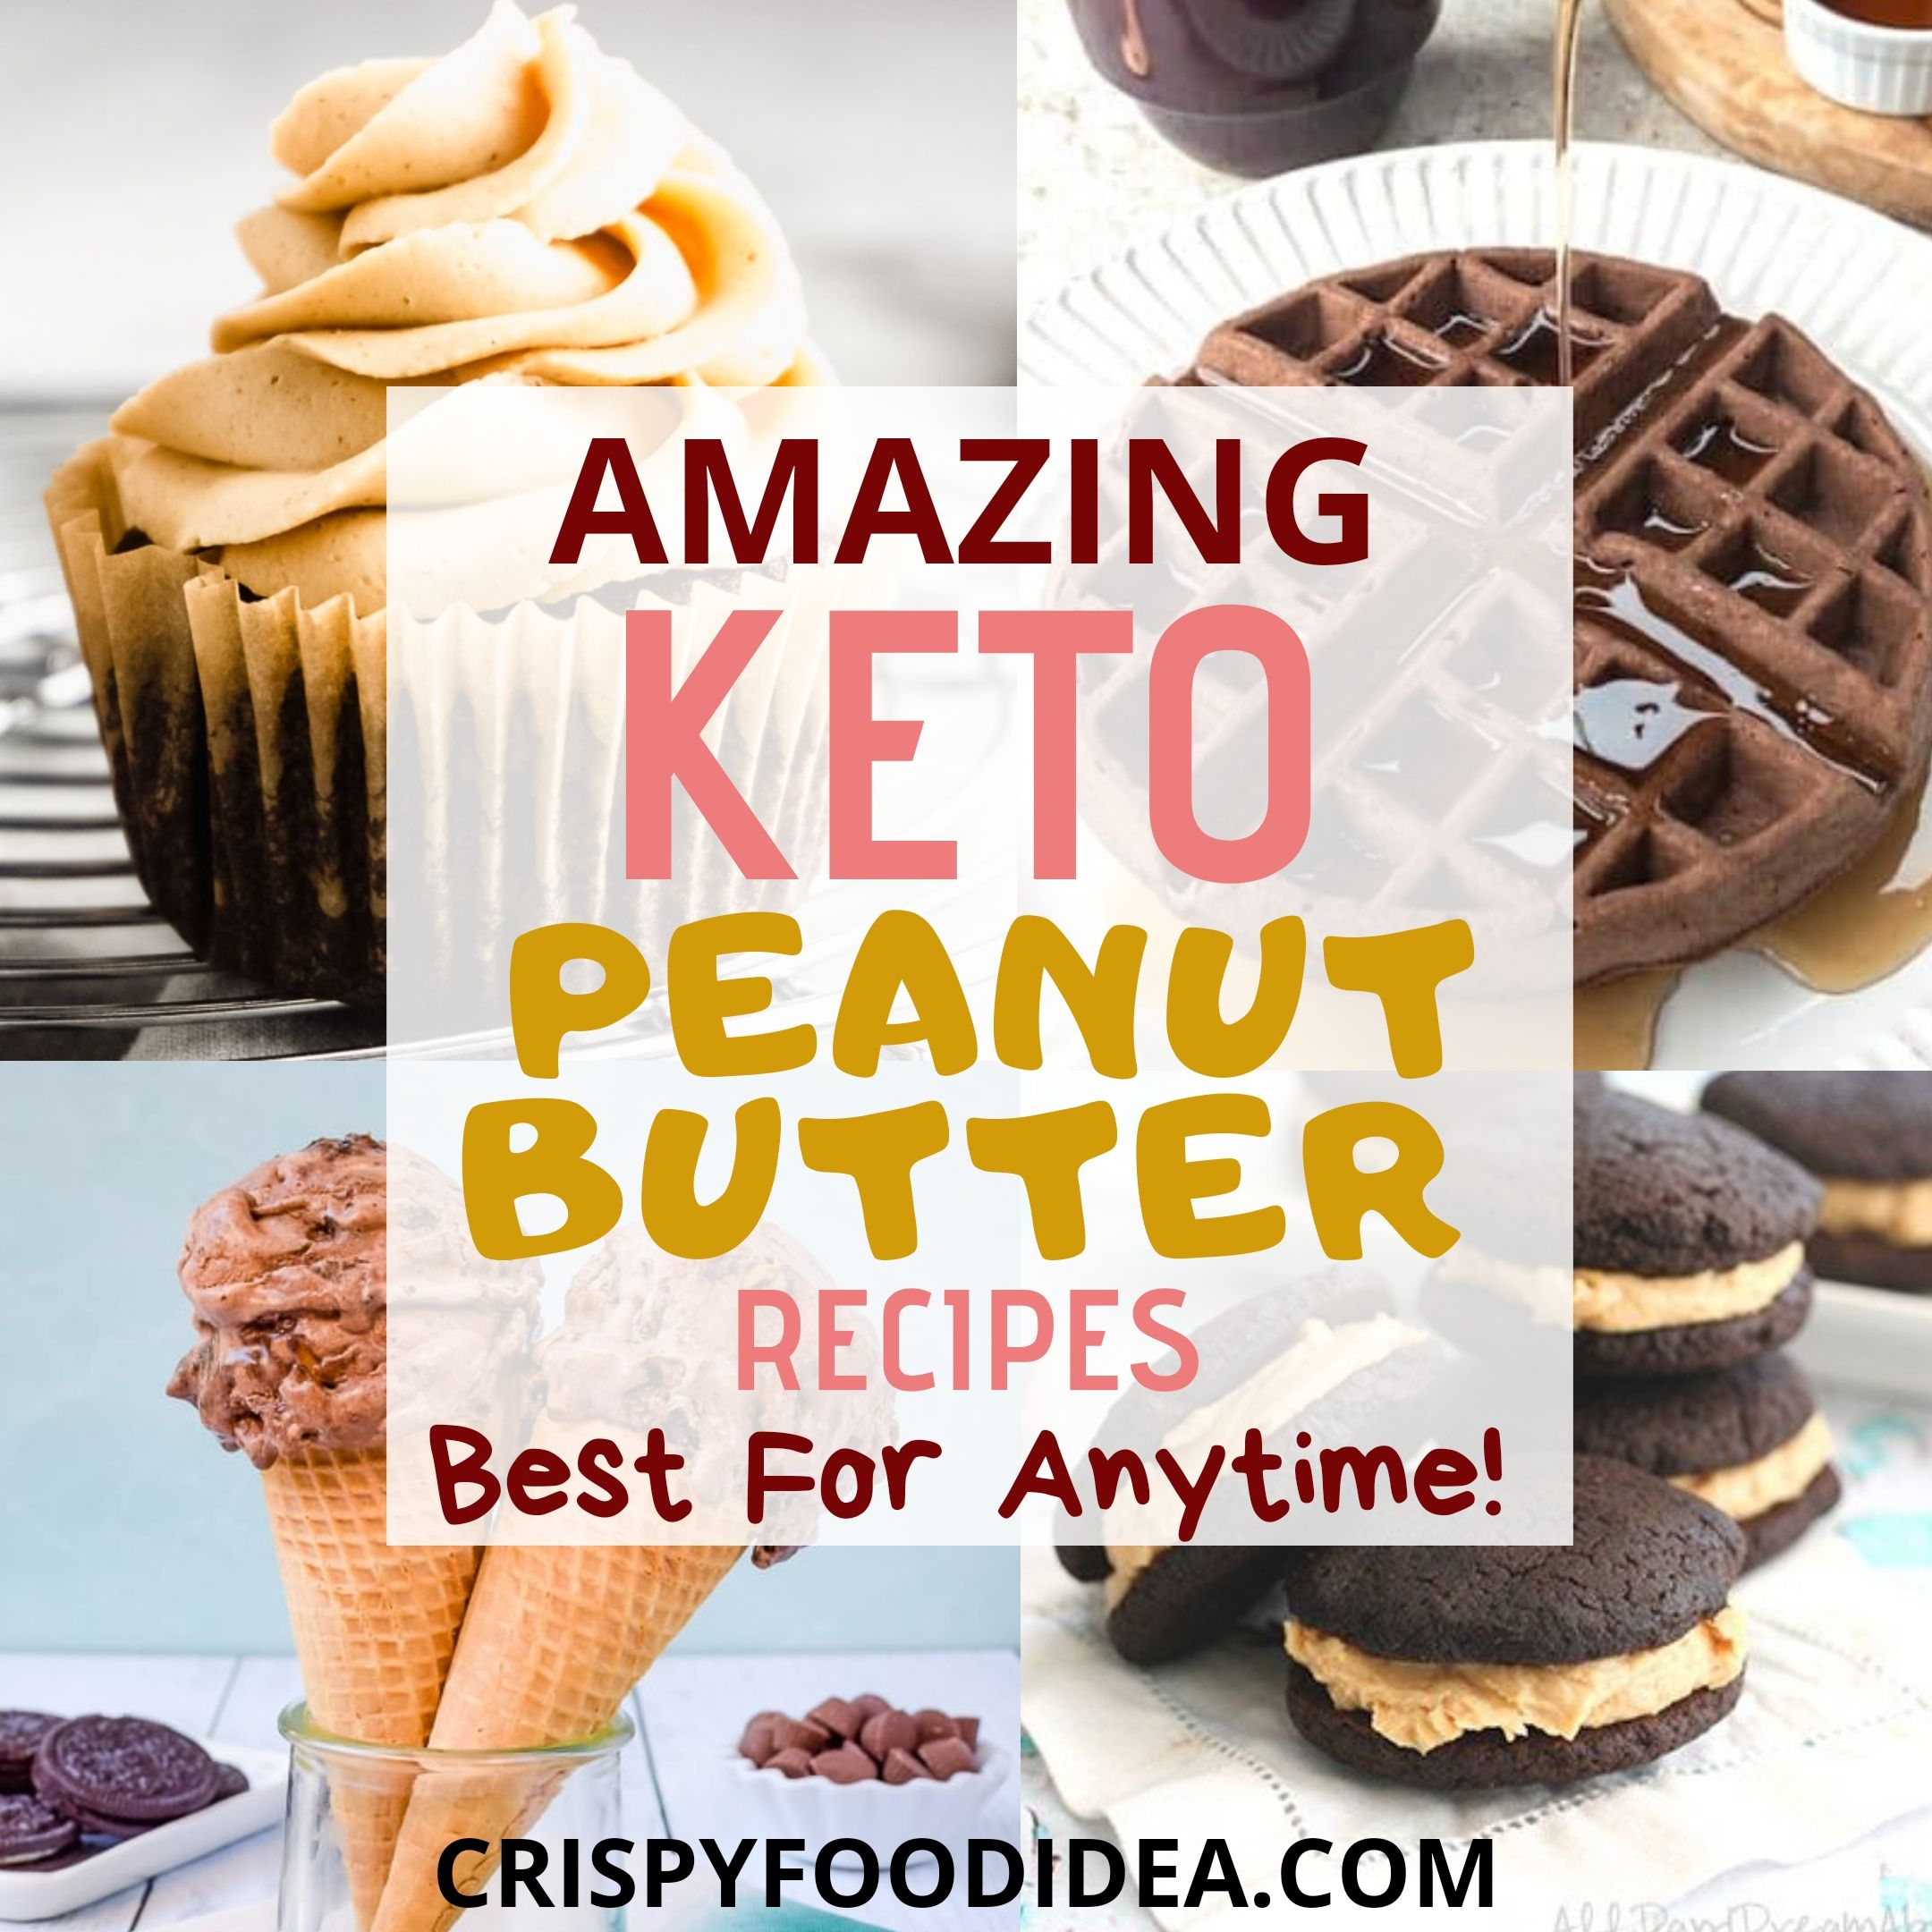 Keto Peanut Butter Recipes